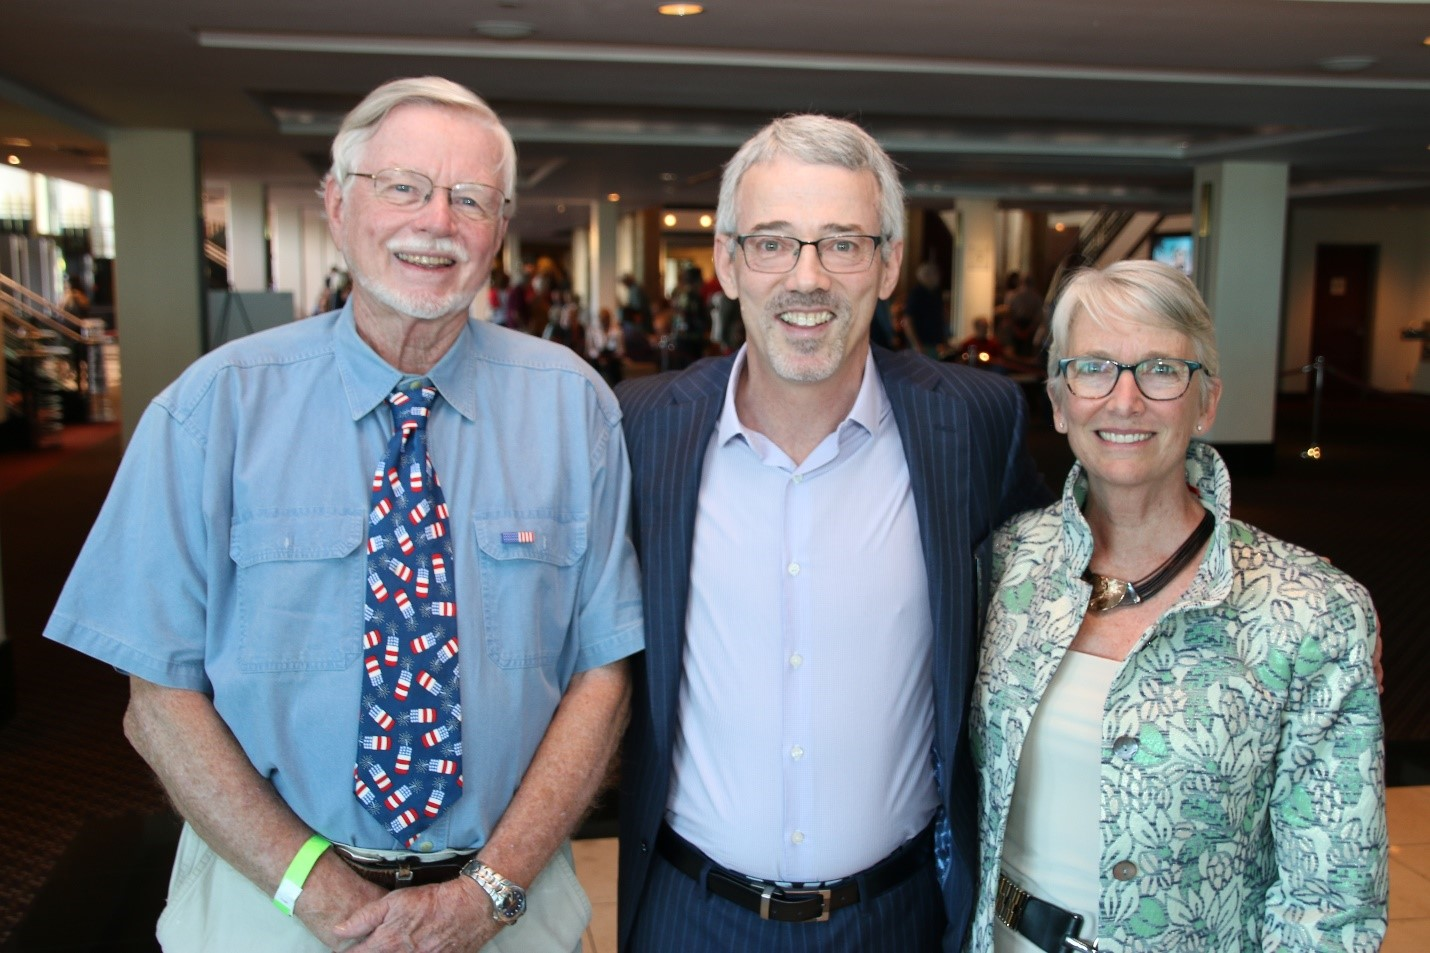 From left to right:  Dr. Albert Hine, Mearns' adviser during graduate school, David Mearns, and Dean Jacqueline Dixon.